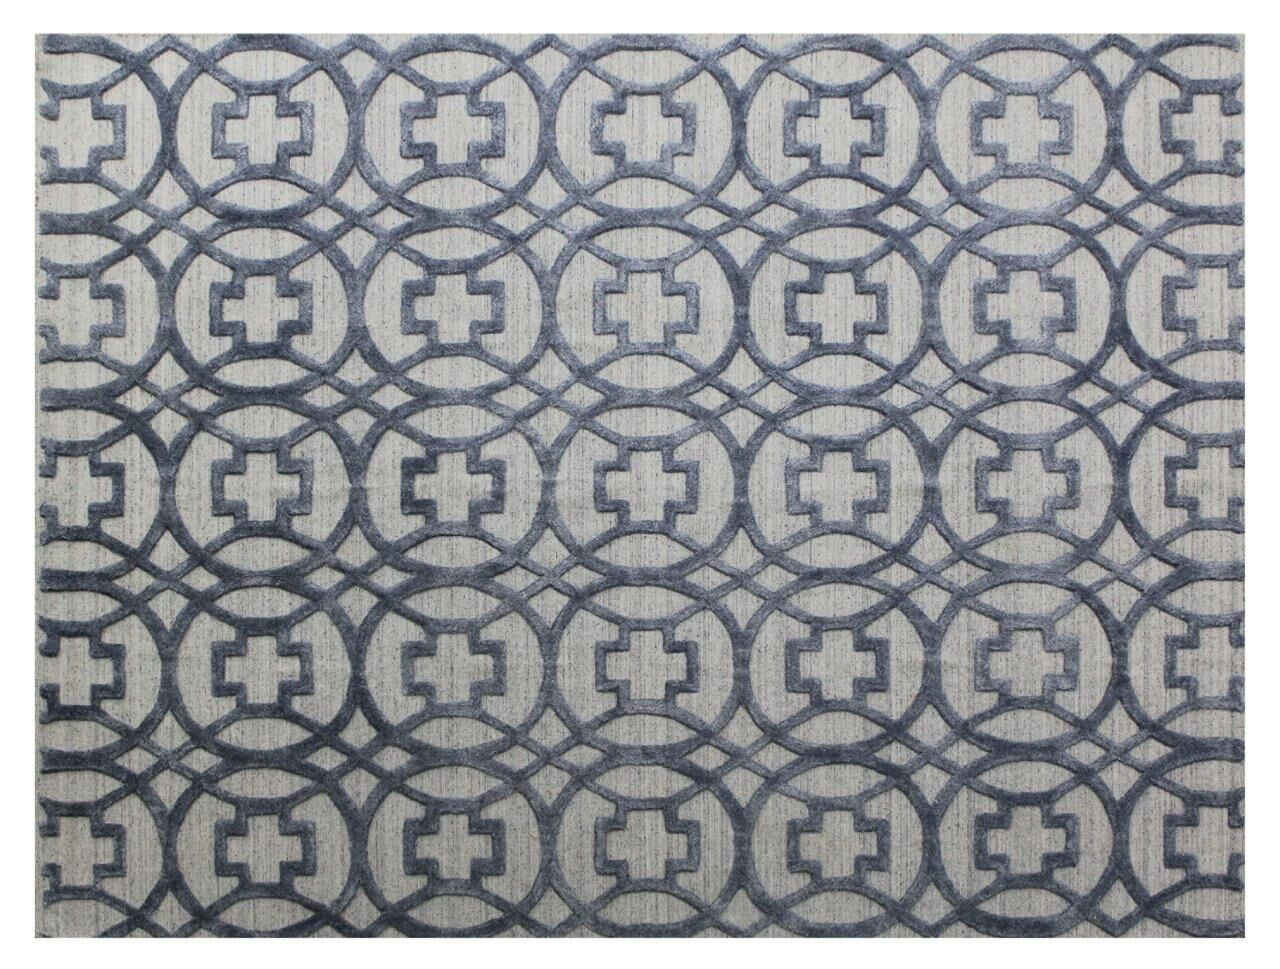 Windsor Hand-Woven Wool Blue/Gray Area Rug Rug Size: Rectangle 12' x 15'